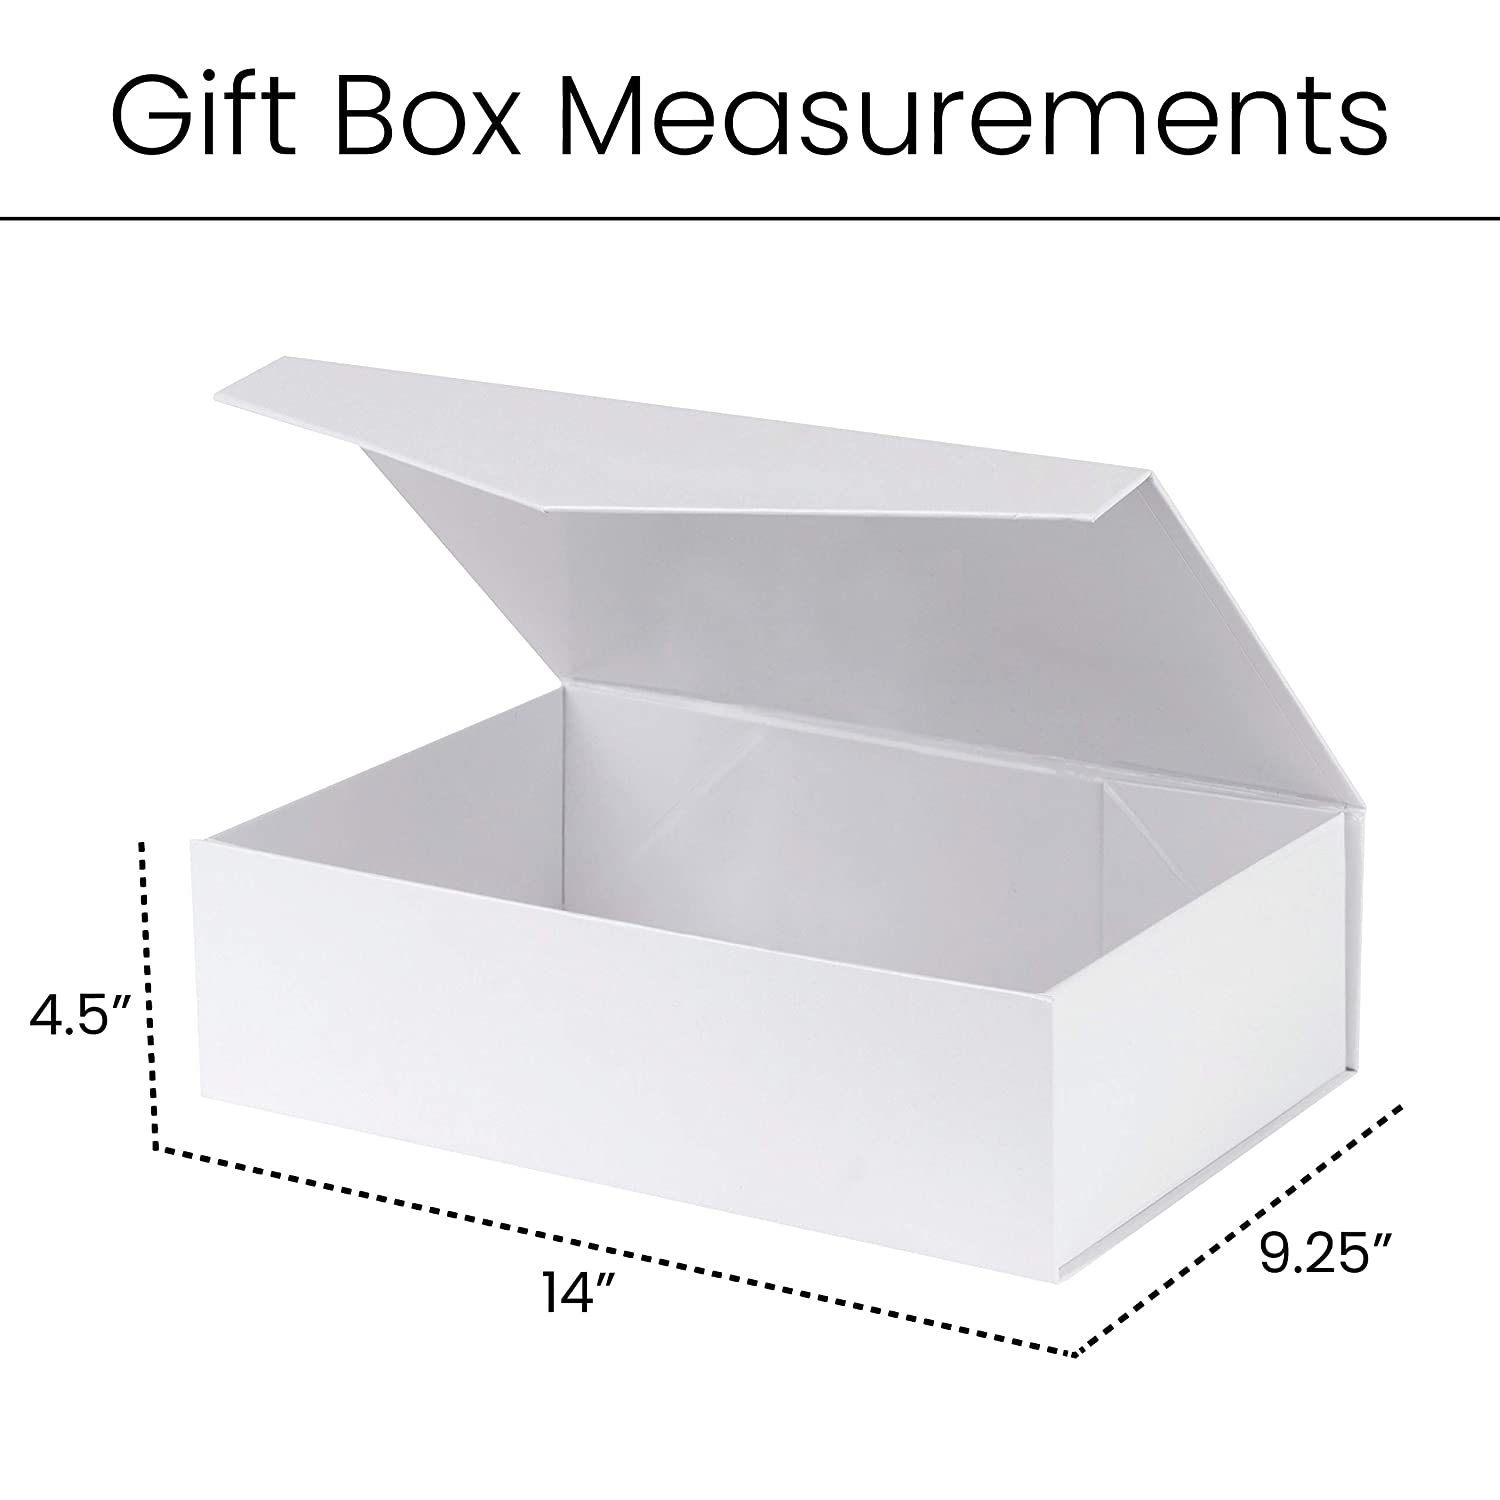 5 Pack White Hard Gift Box with Magnetic Closure Lid 14 X 9 X 4 Rectangular Sturdy Gift Boxes with White Glossy Finish